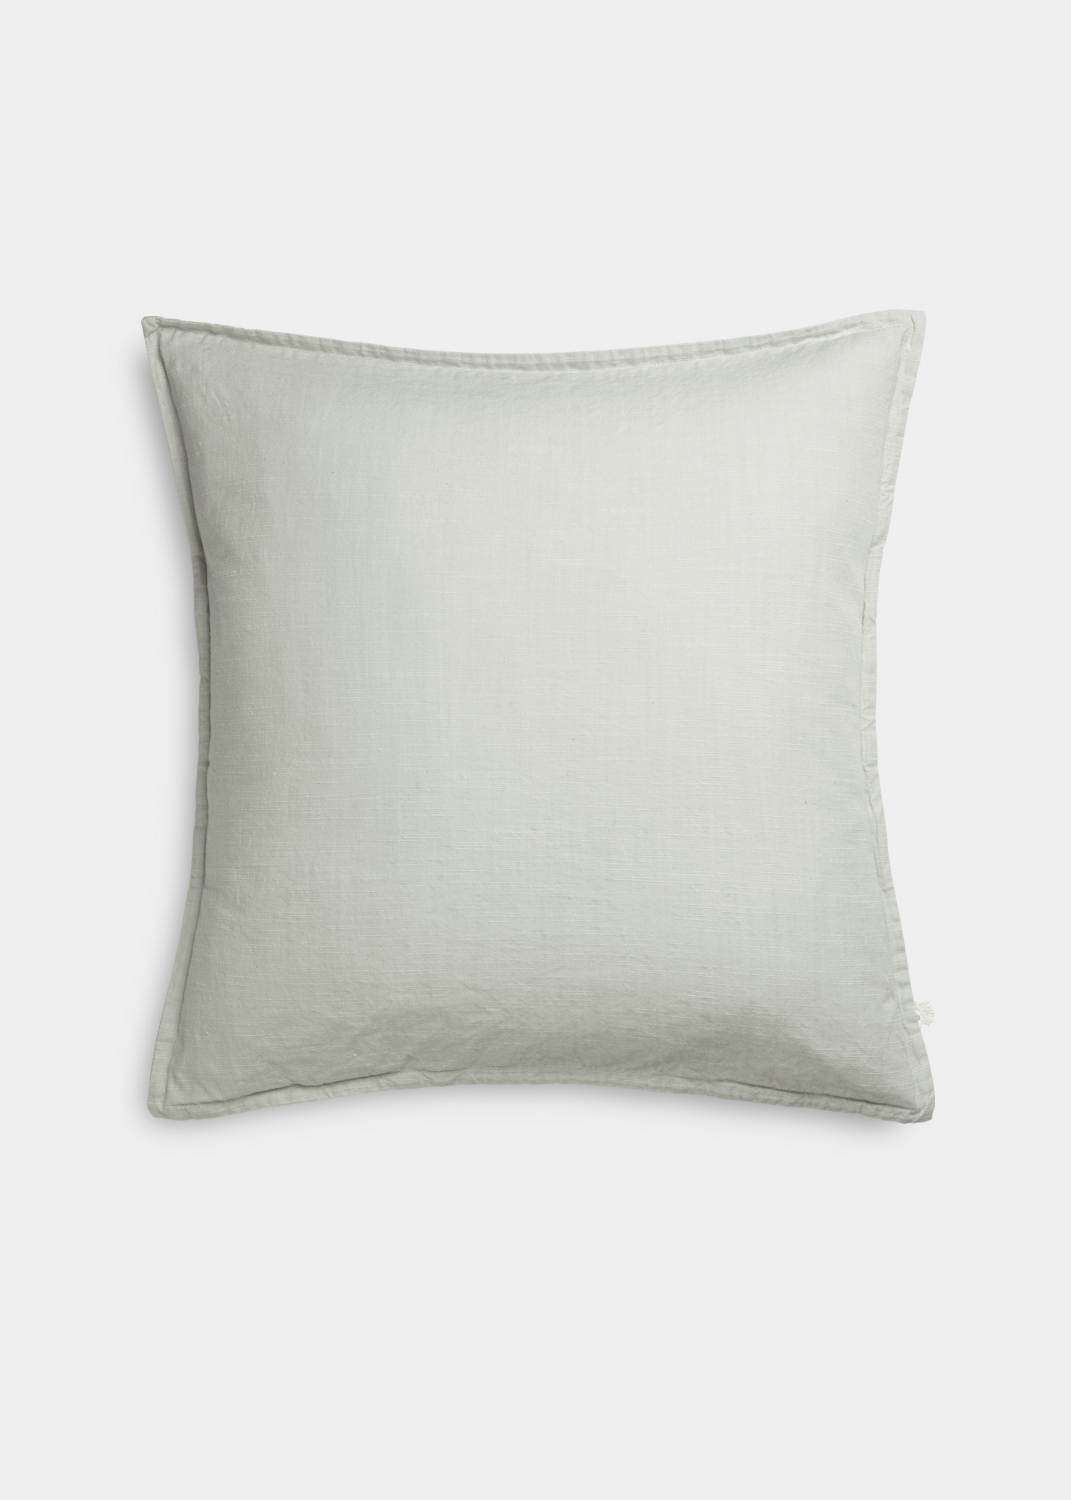 Cushions - Pillow Cotton Slub (50x50)